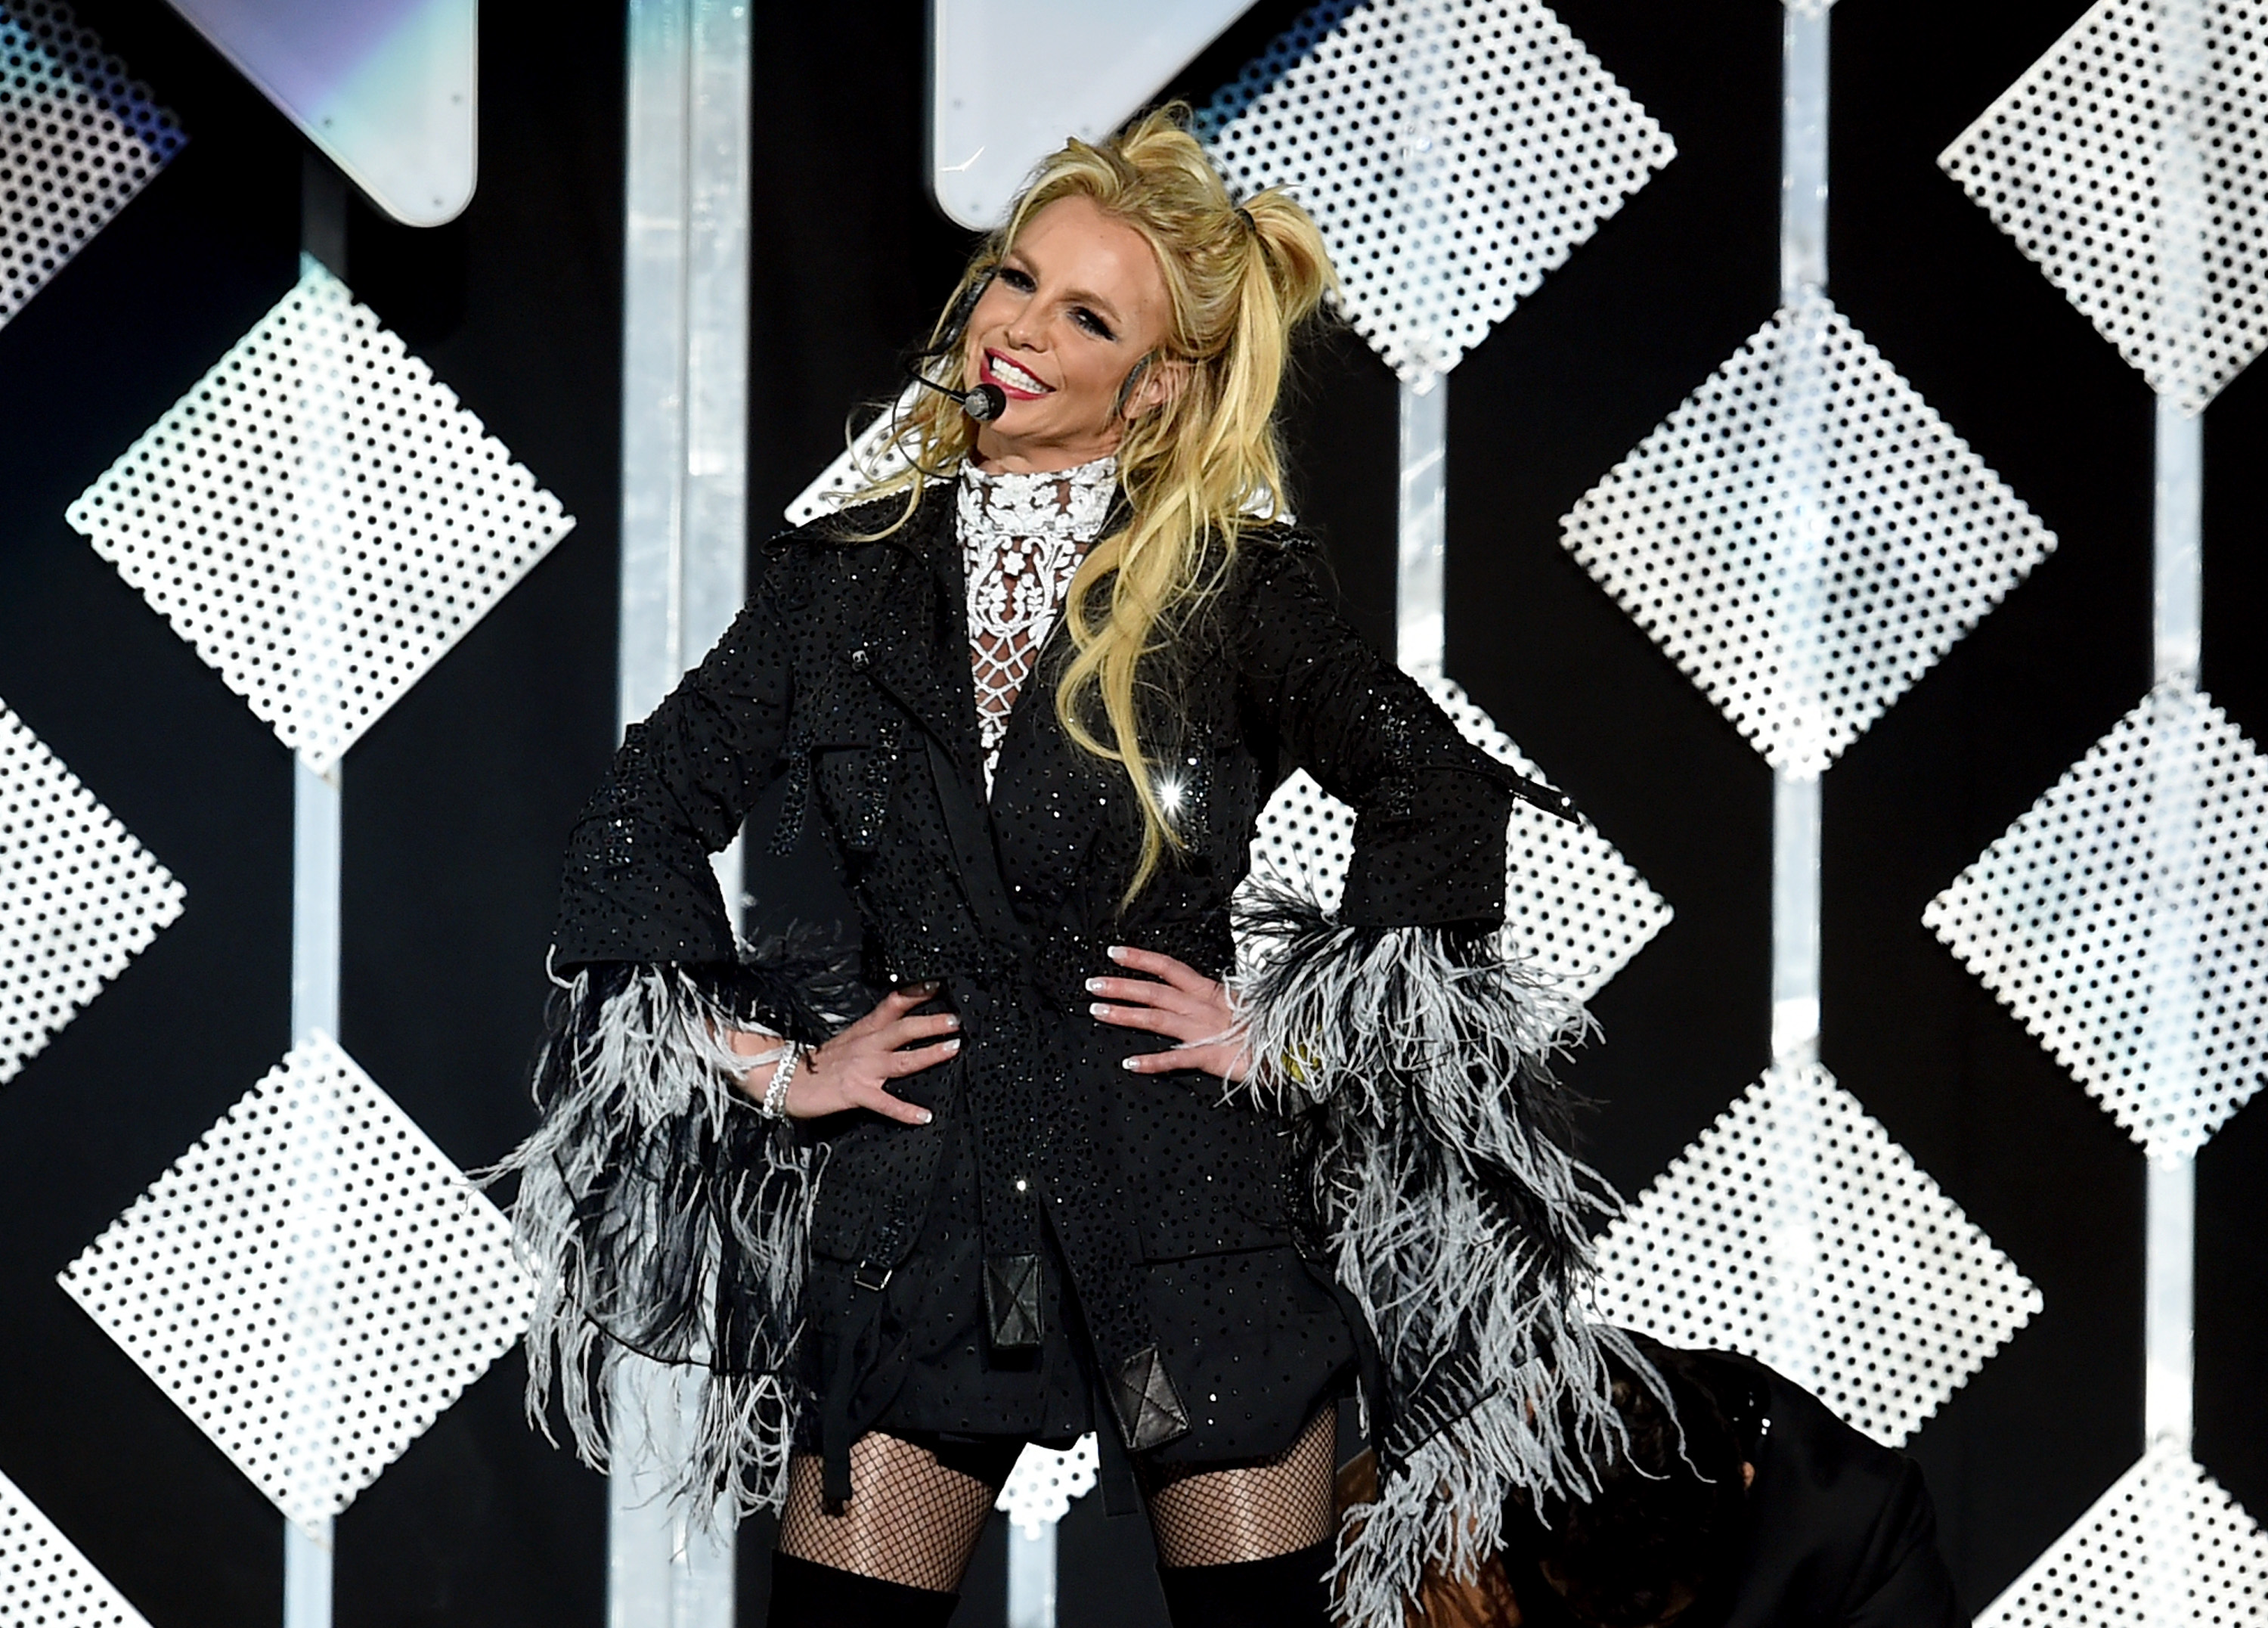 Singer Britney Spears performs onstage during 102.7 KIIS FM's Jingle Ball 2016 presented by Capital One at Staples Center on December 2, 2016 in Los Angeles, Calif.